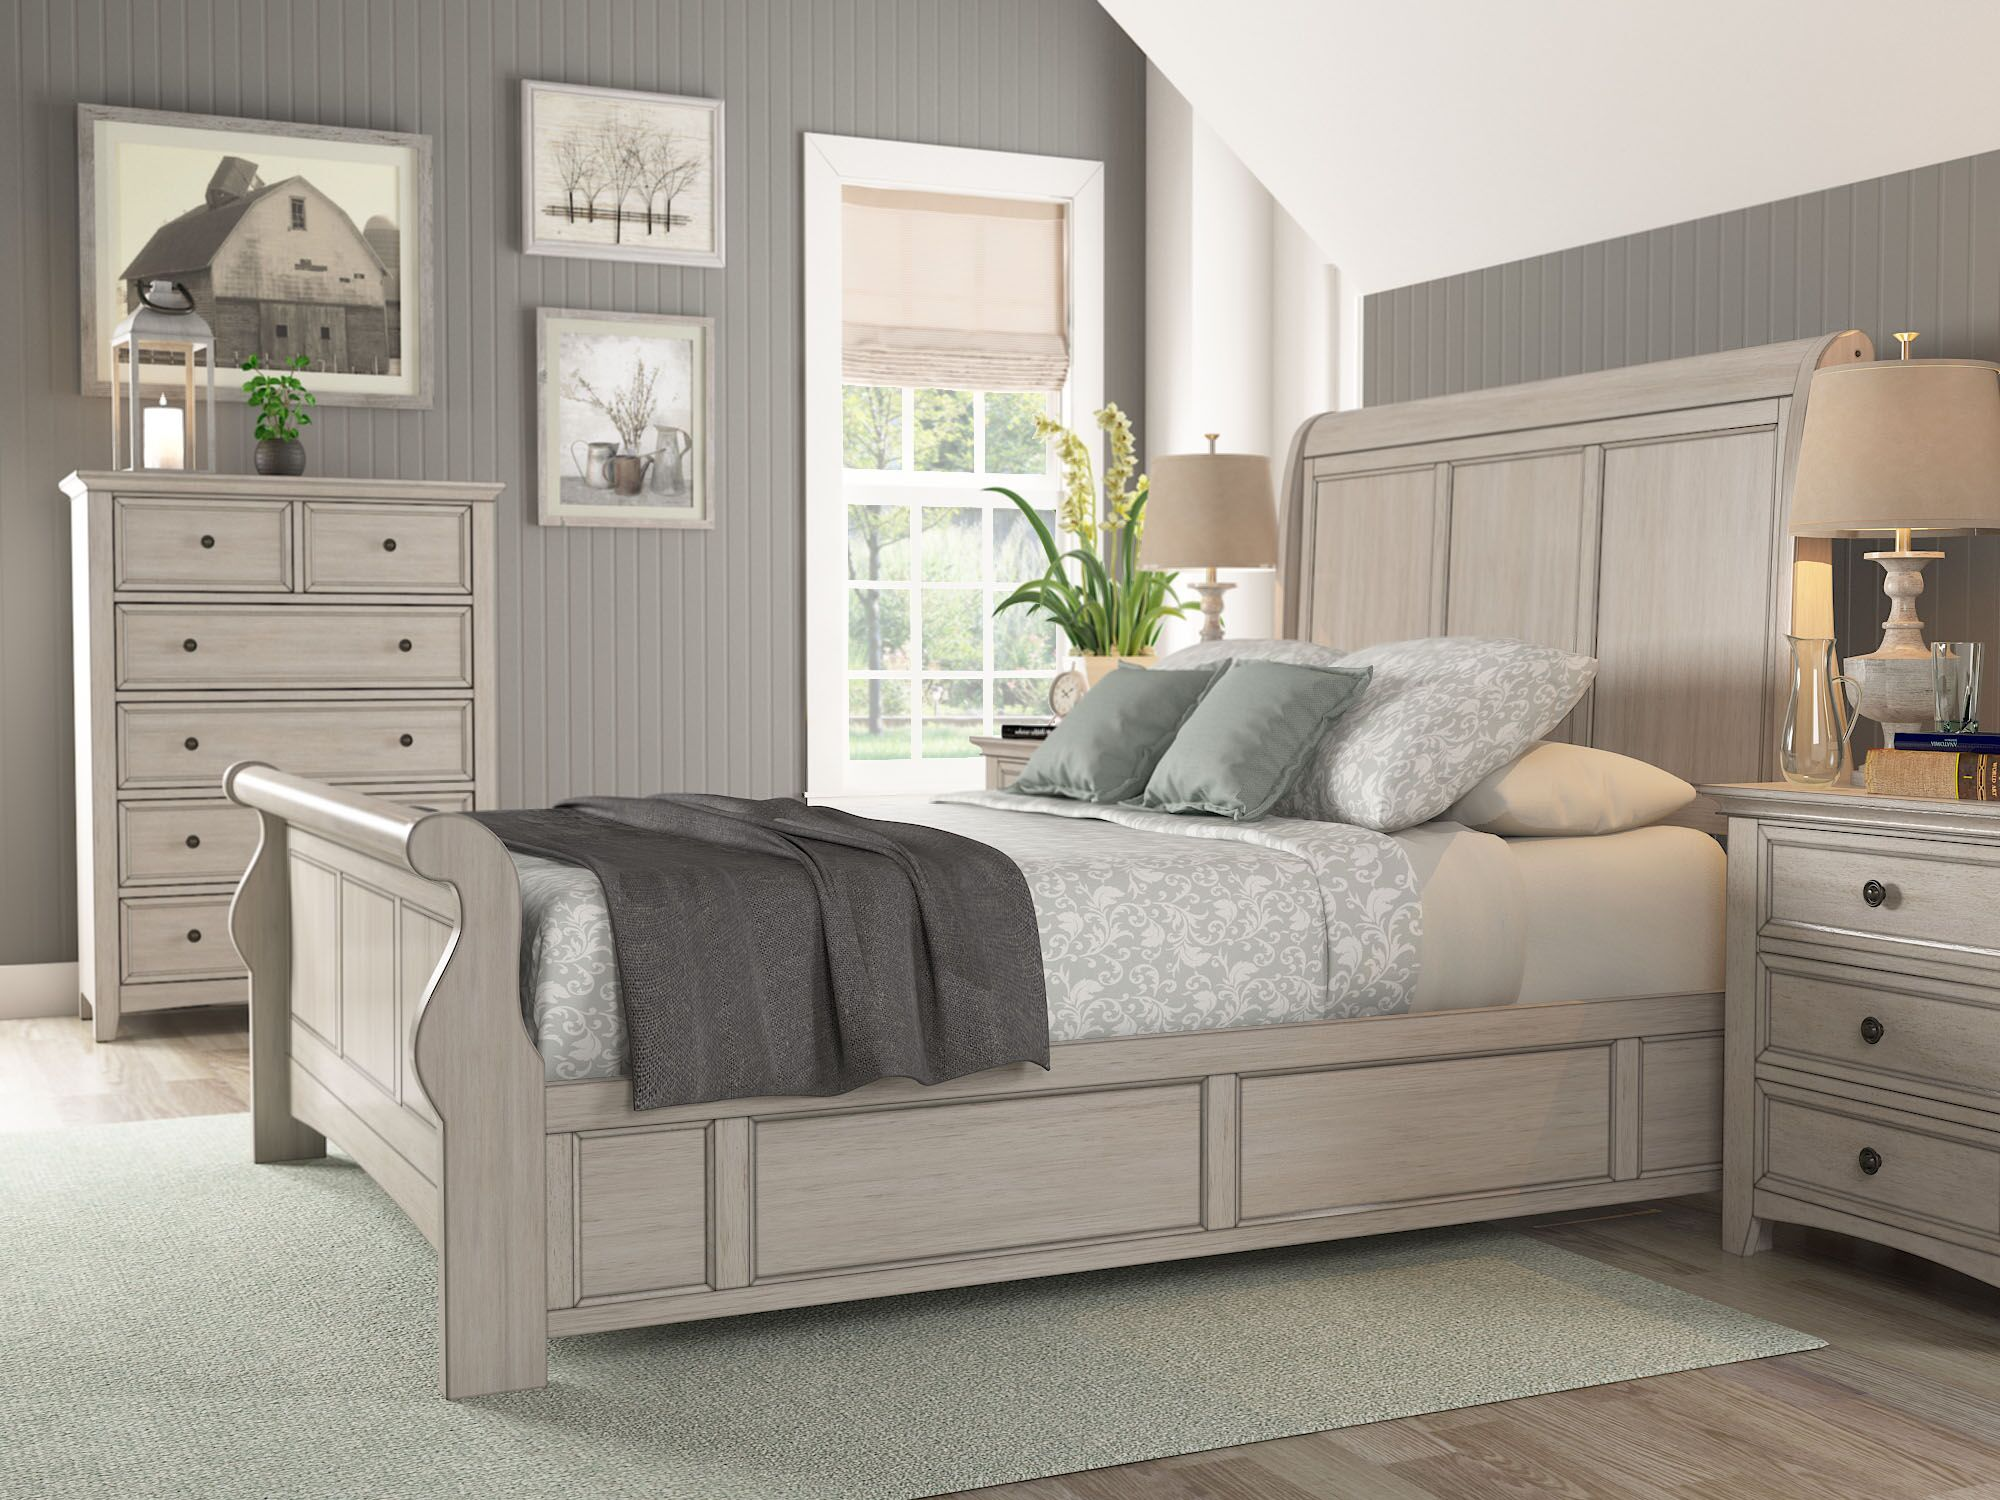 Sefton Sleigh Bed Color: Antique White, Size: Queen